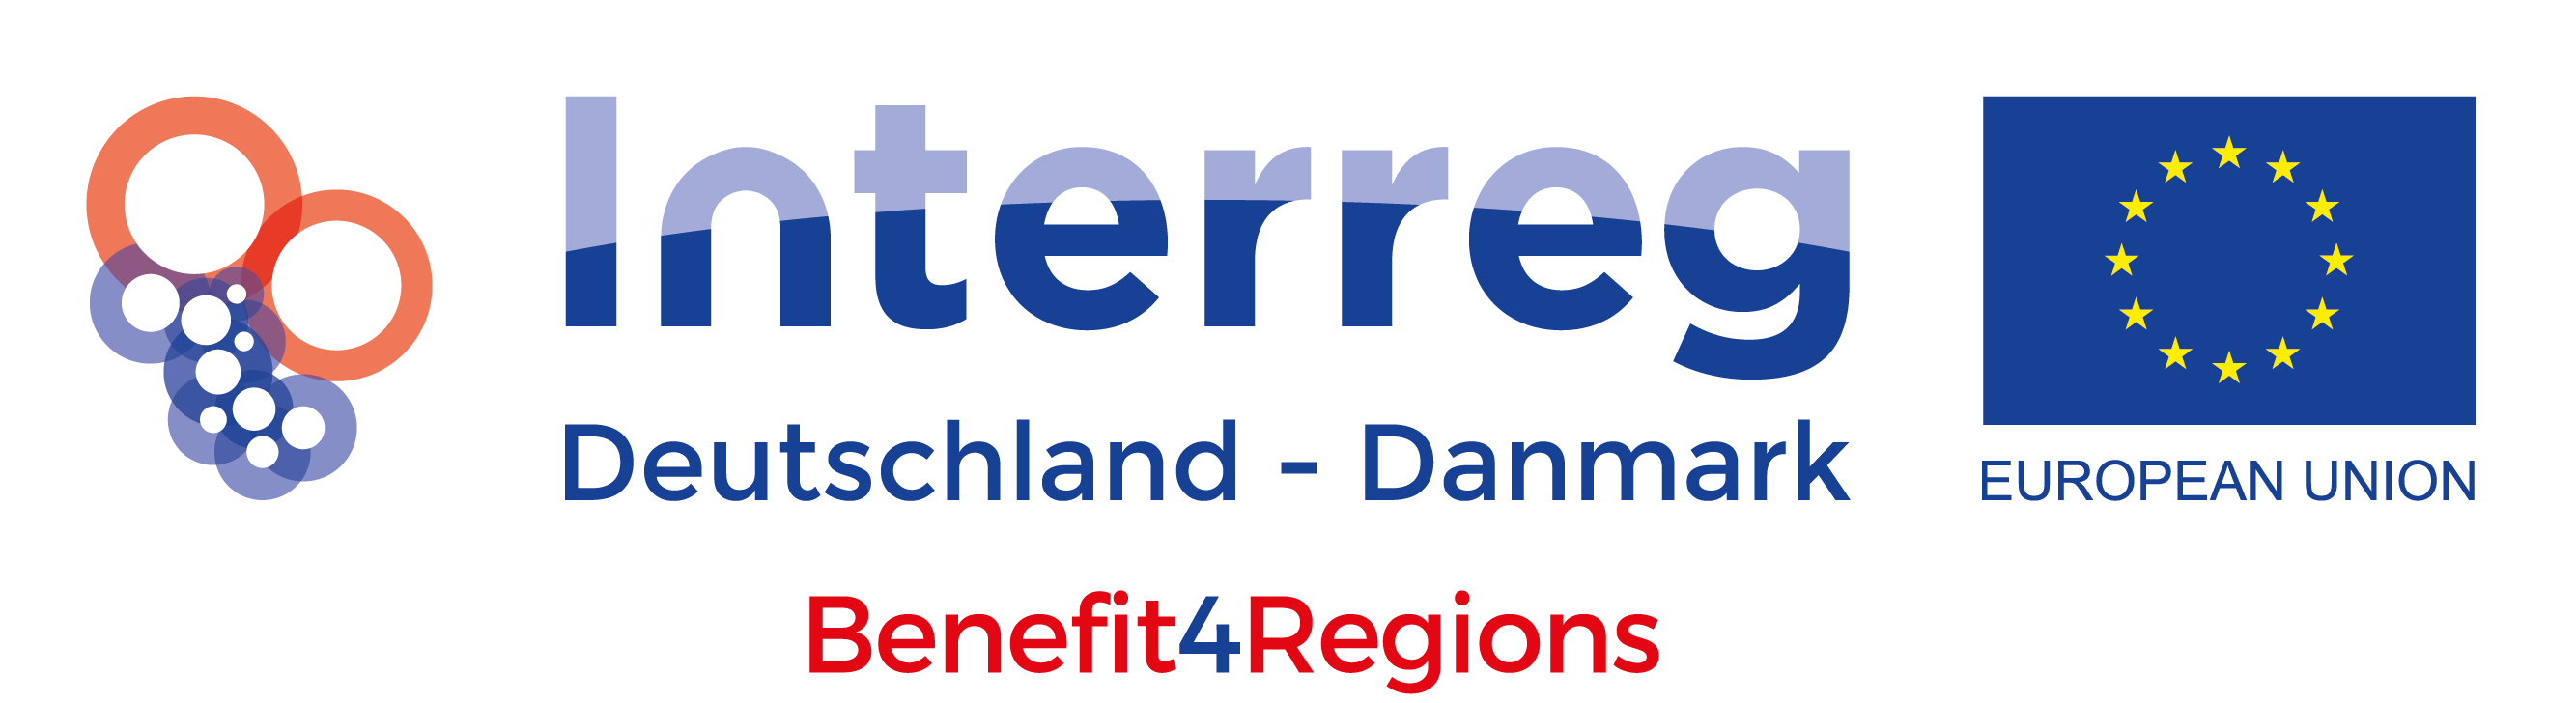 Billedresultat for interreg+nordmus+png